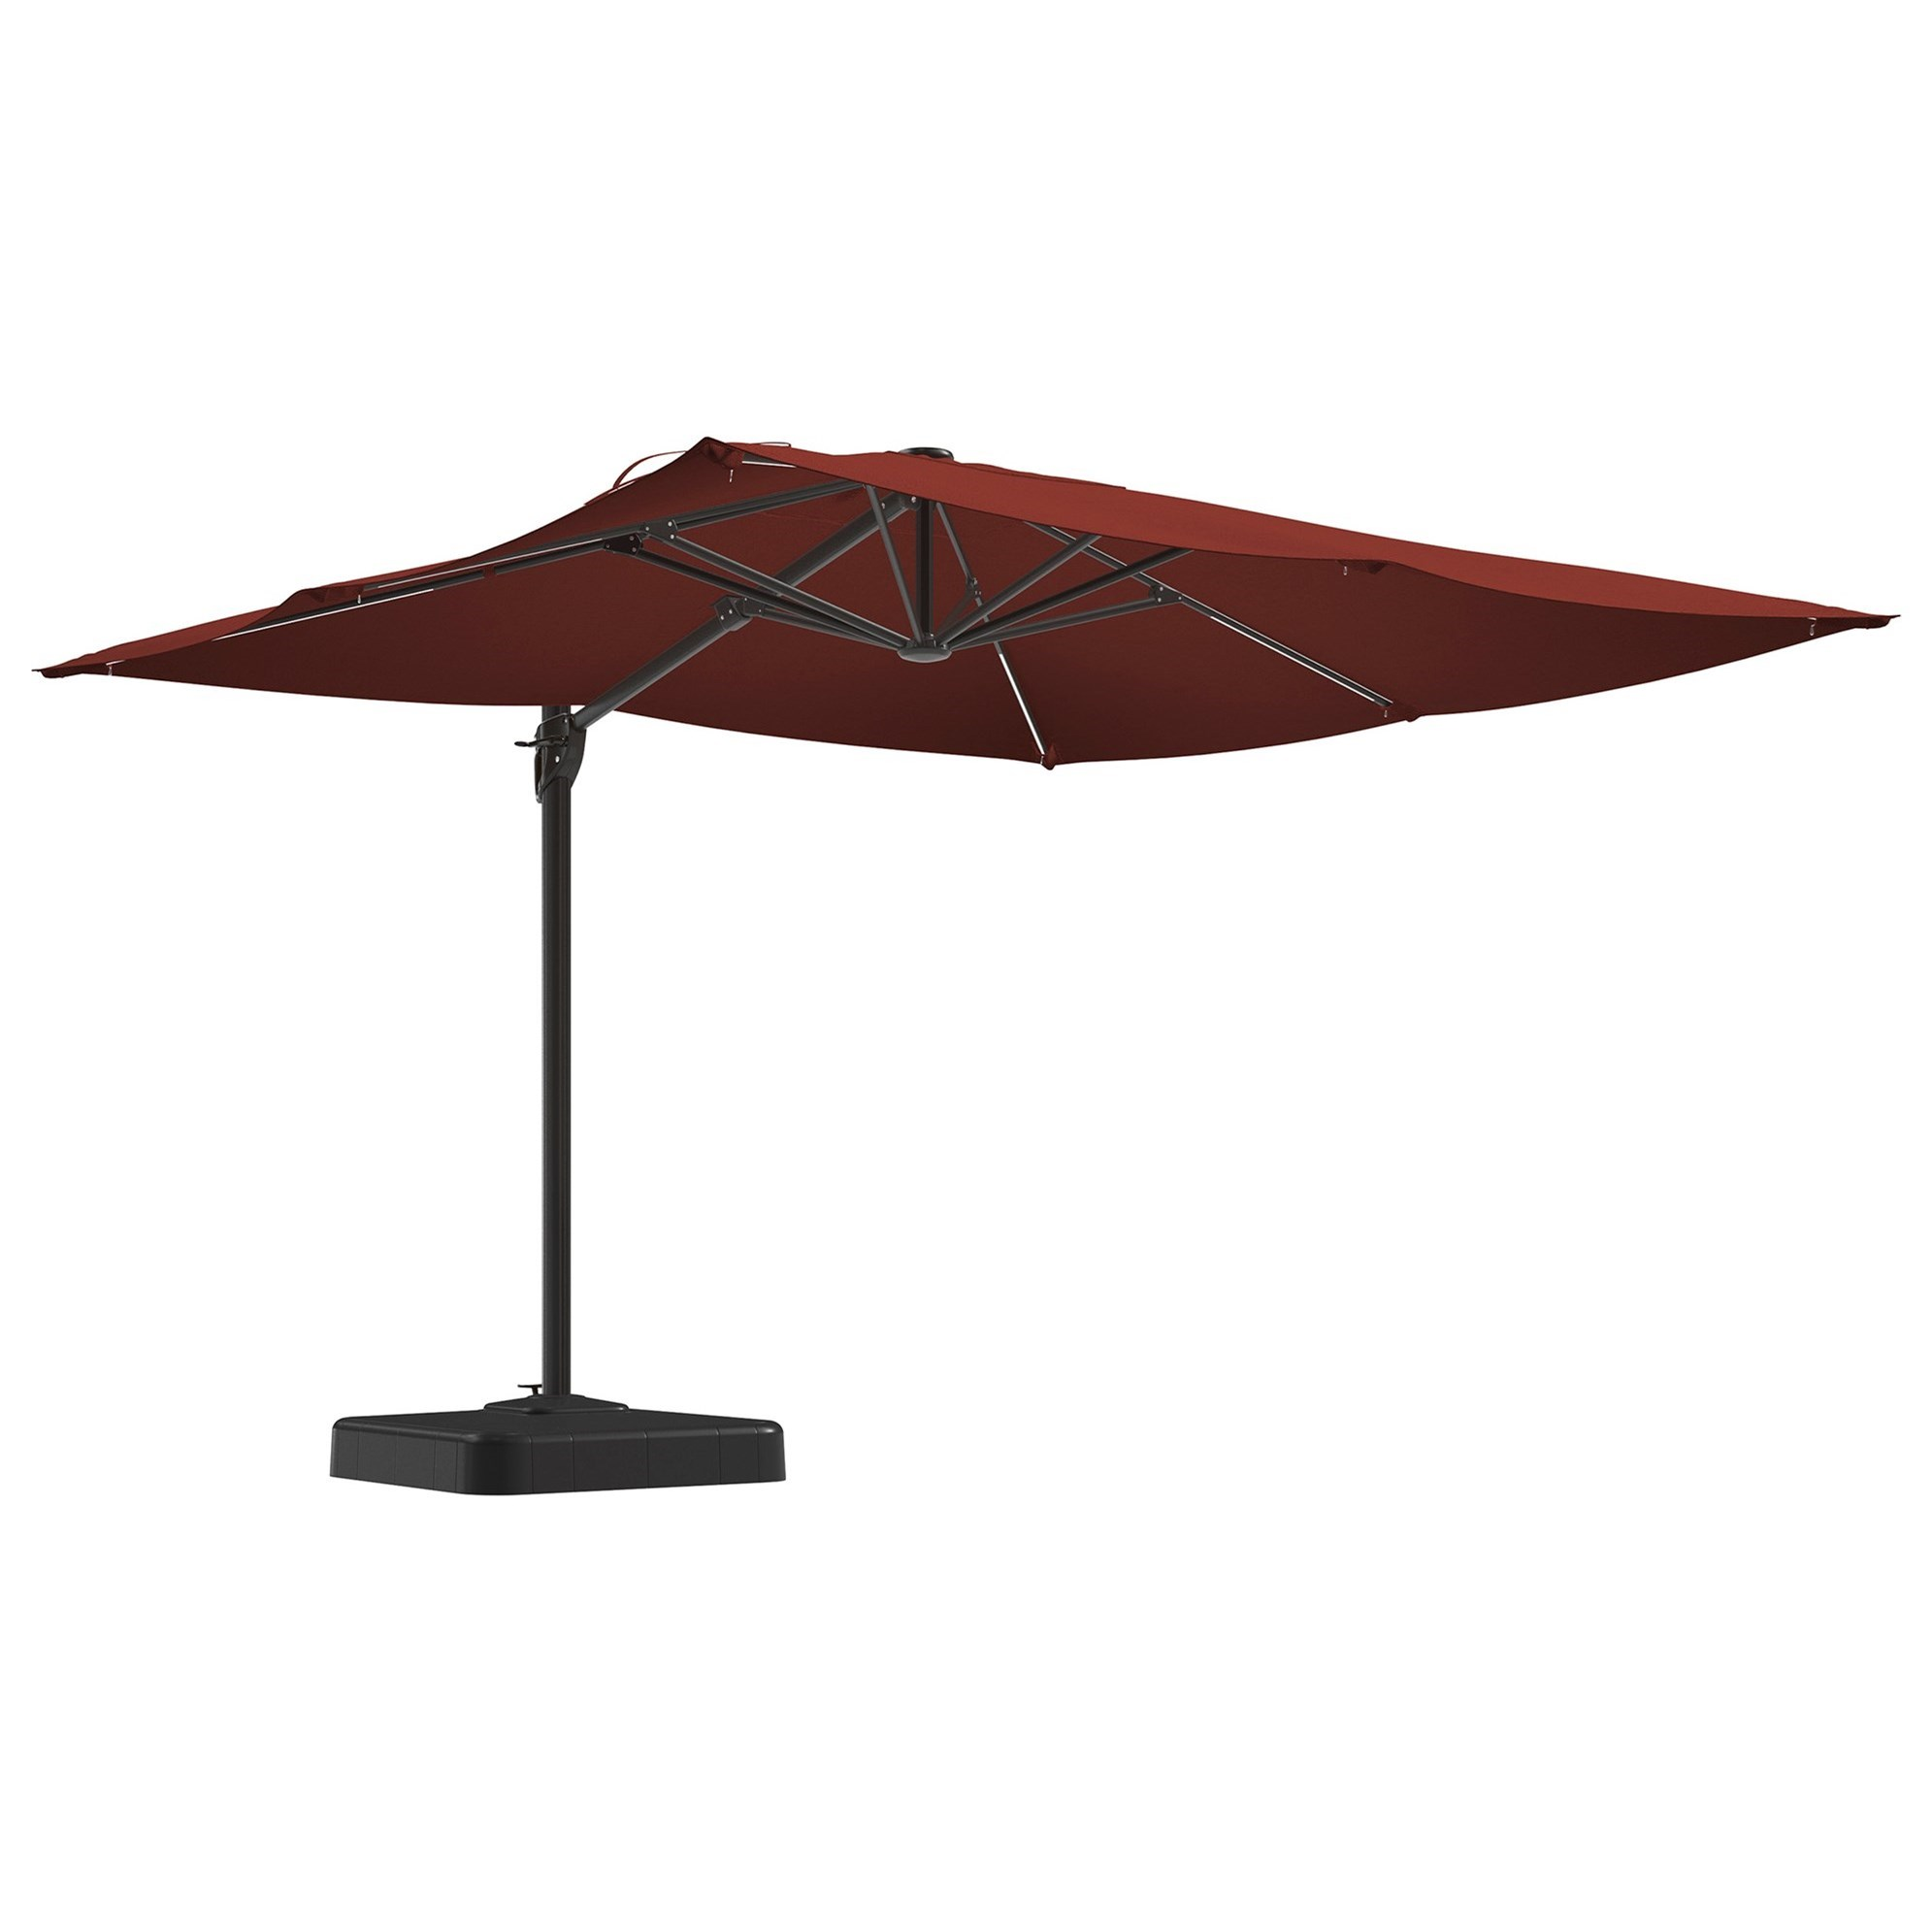 Signature Design by Ashley Oakengrove Large Cantilever Umbrella - Item Number: P017-993